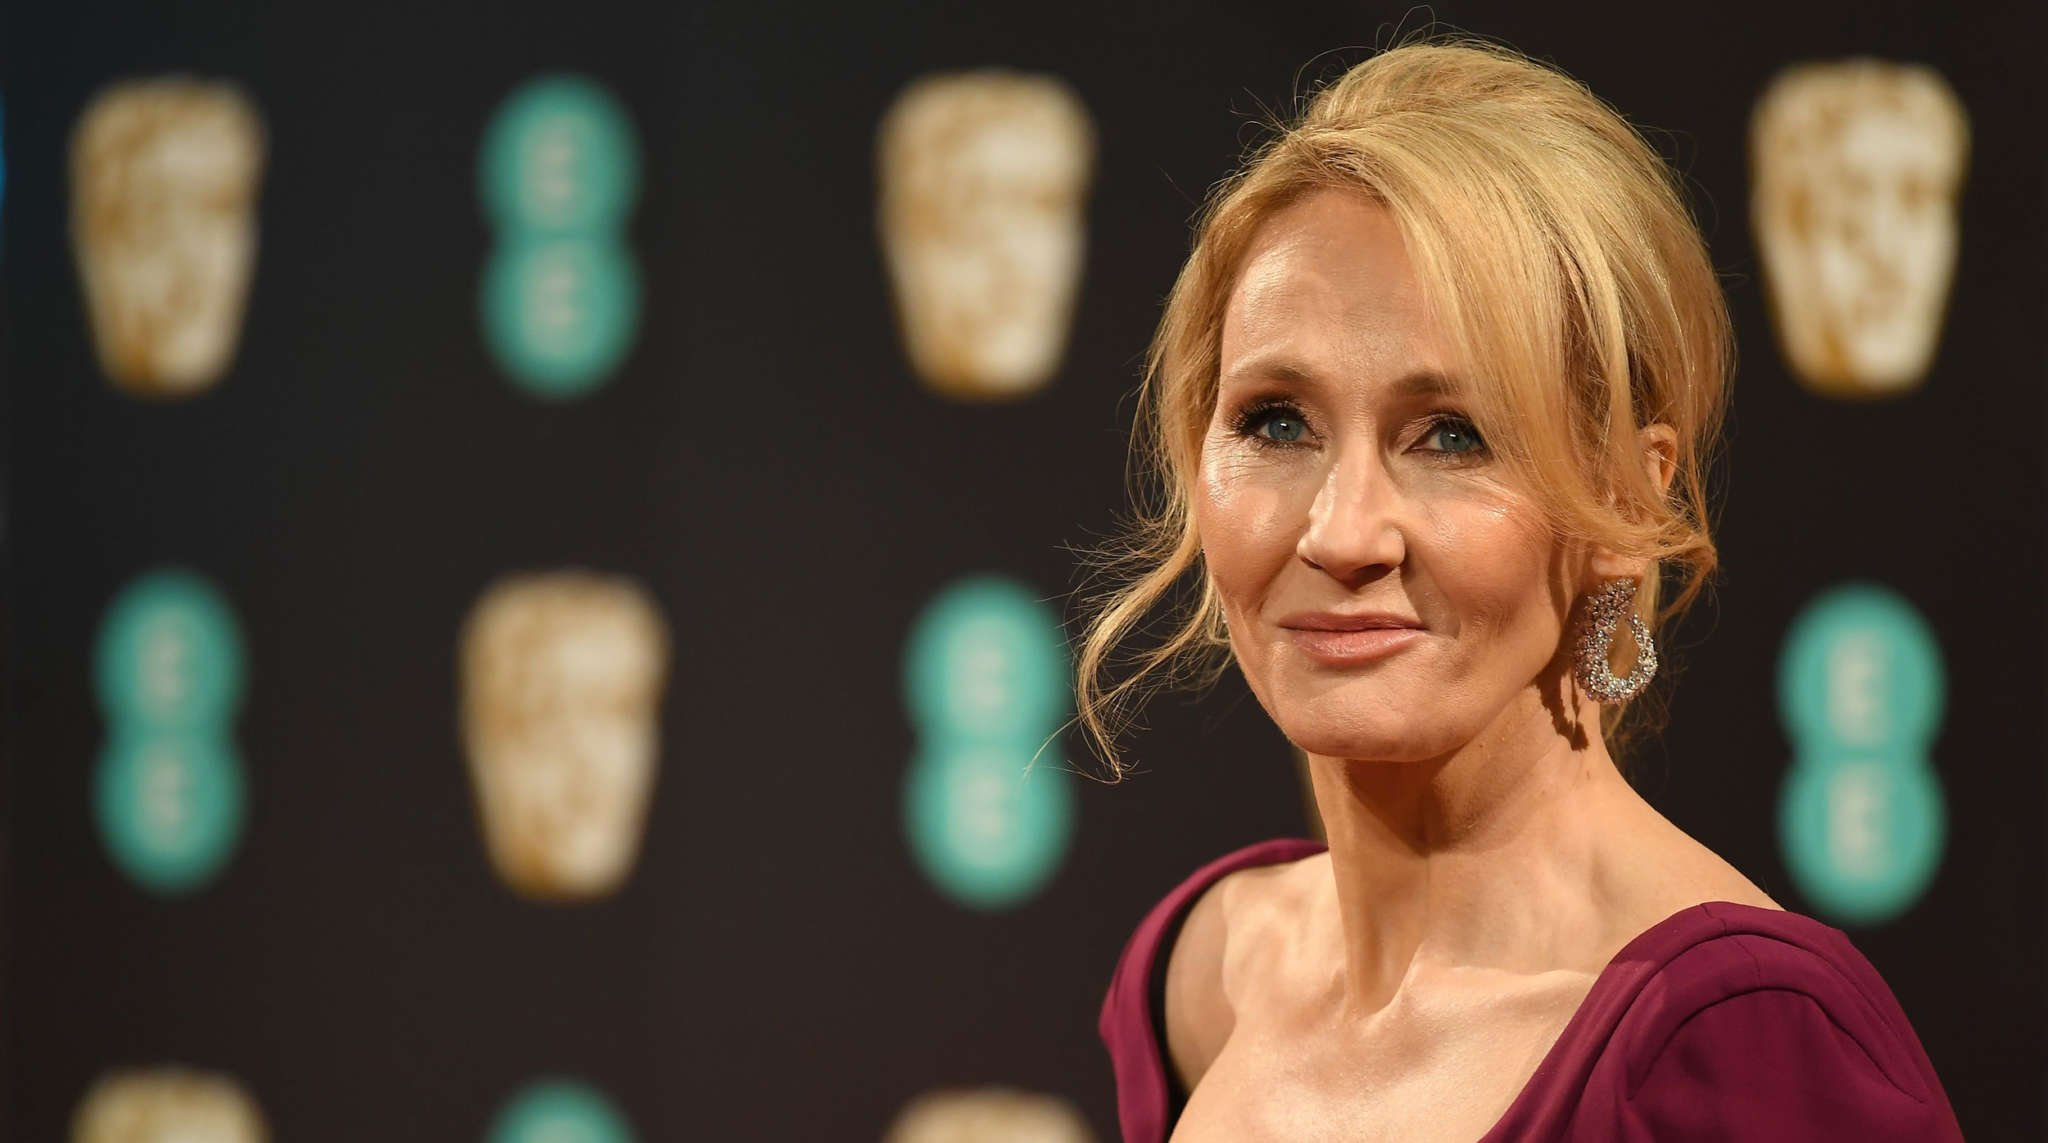 J.K. Rowling Releases New Book With Transphobic Undertones And People Are Very Upset!